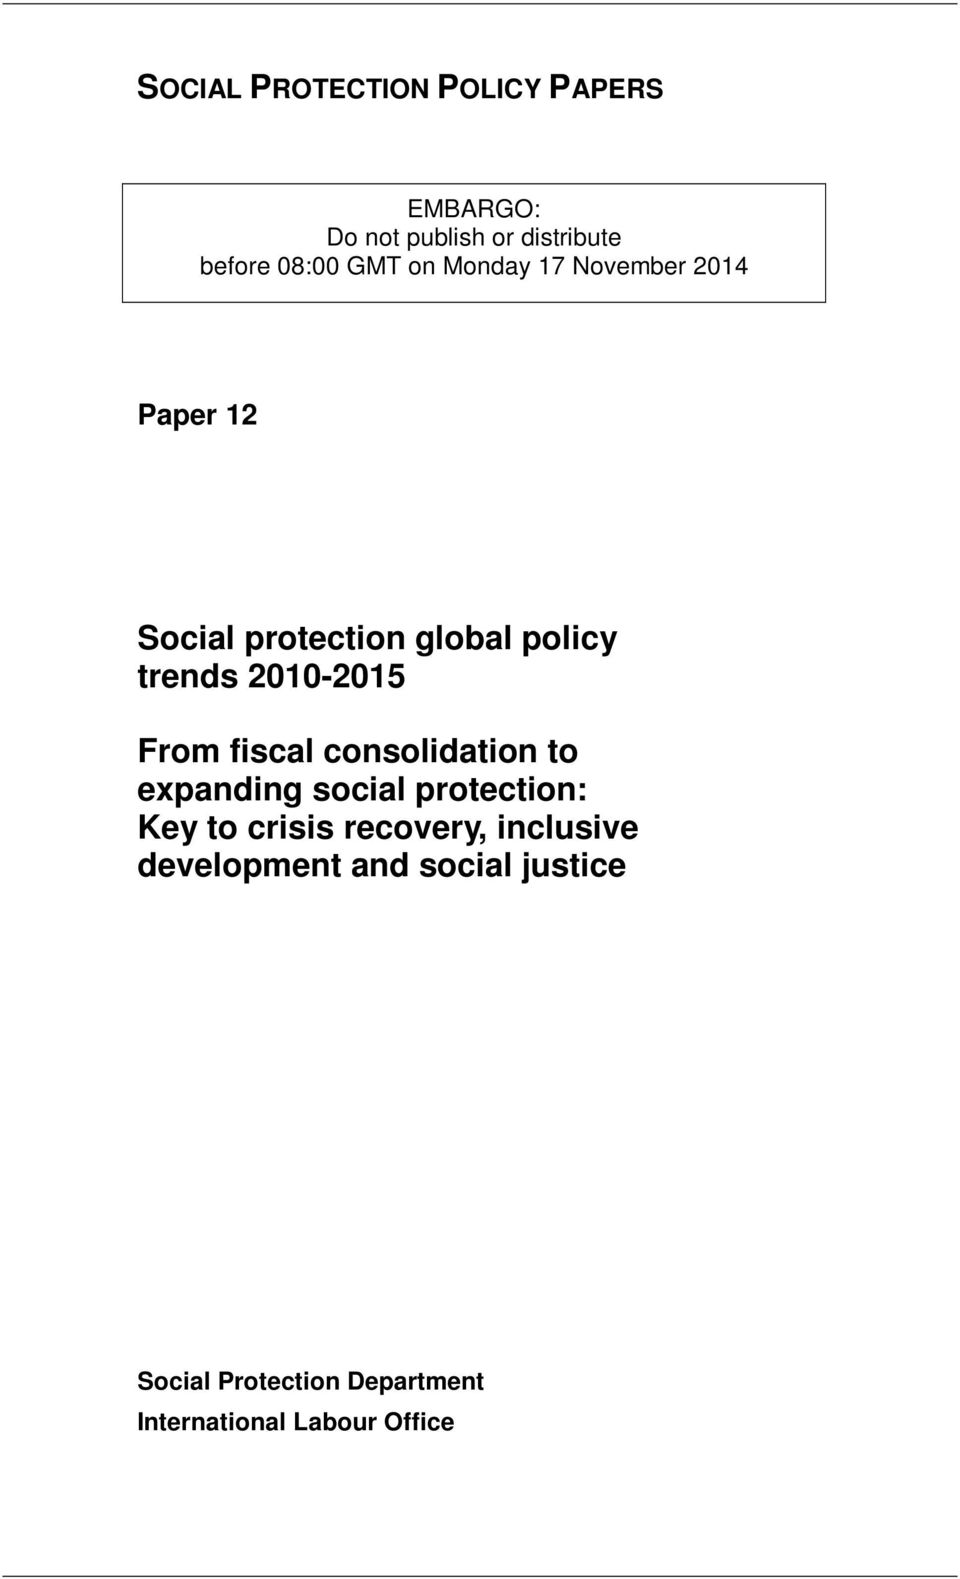 From fiscal consolidation to expanding social protection: Key to crisis recovery,